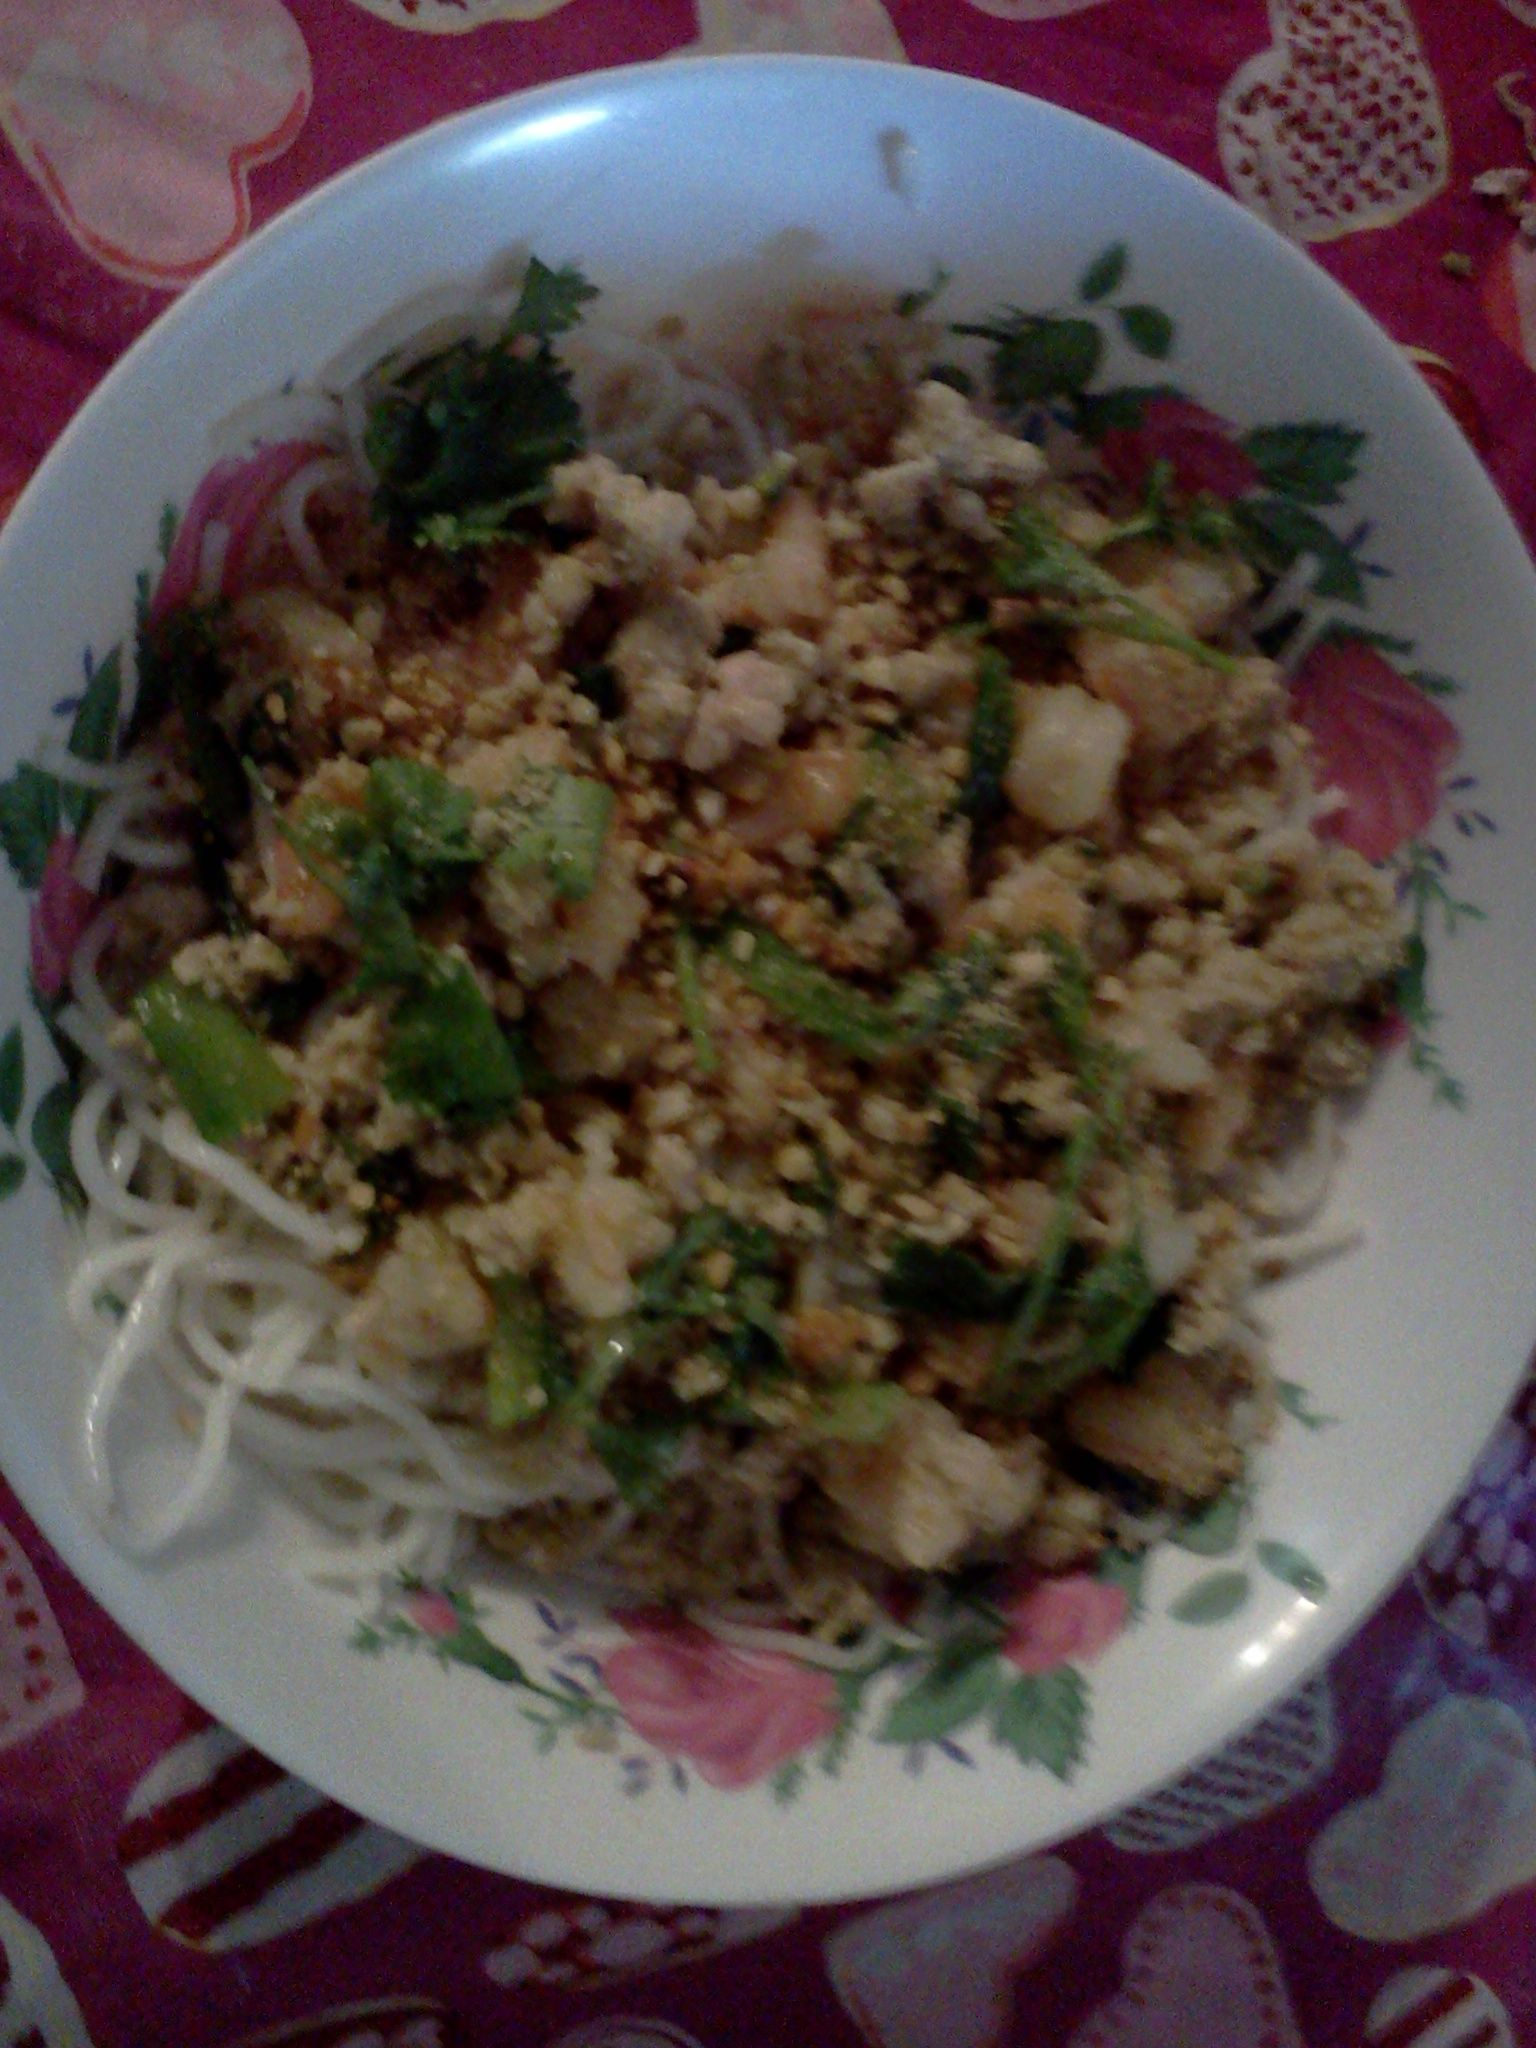 another vermicelli bowl